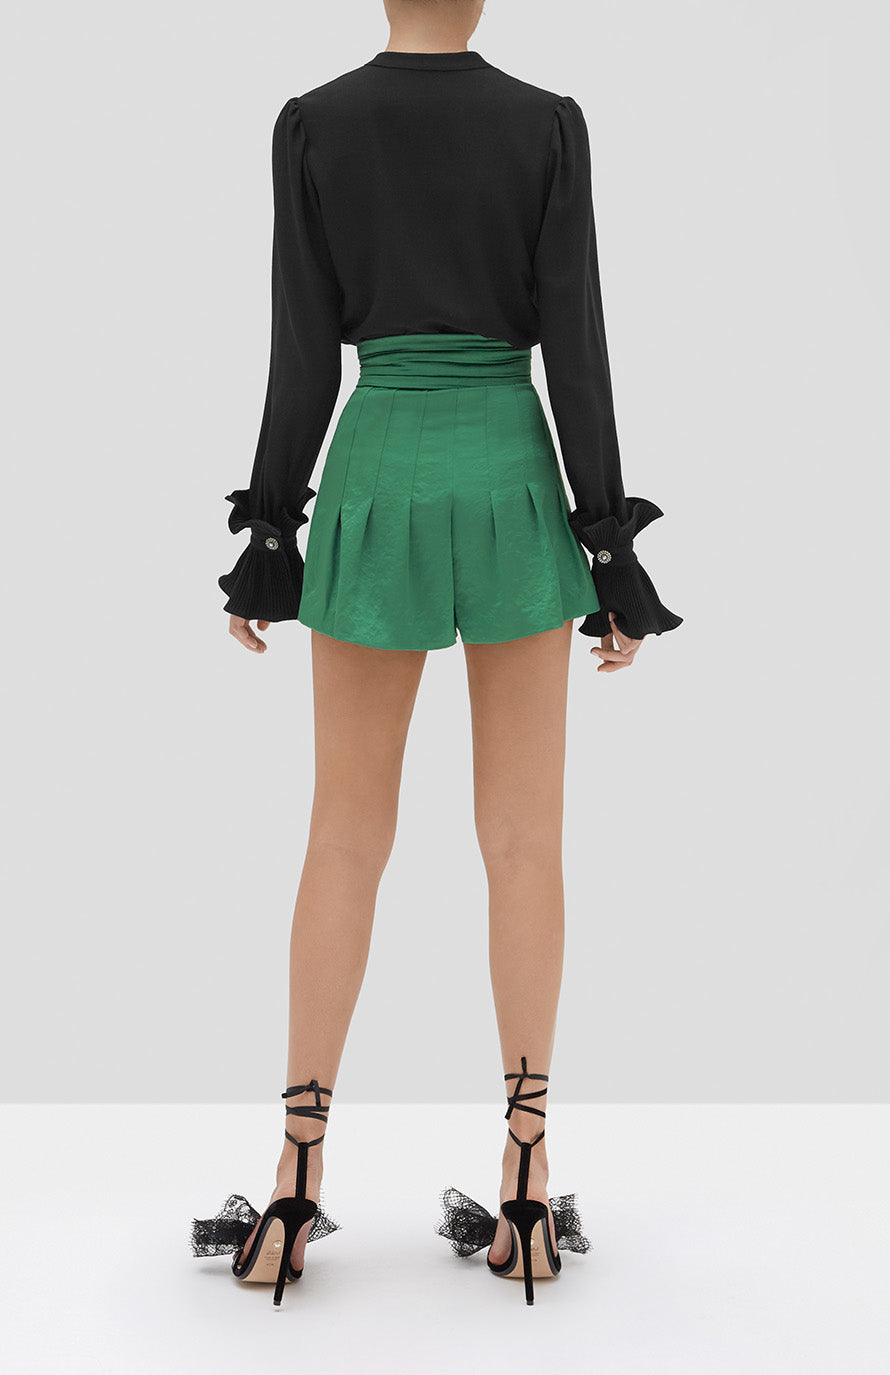 Alexis Meera Top in Black and Lucca Shorts in Emerald Green from our Holiday 2019 Ready To Wear Collection. - Rear View